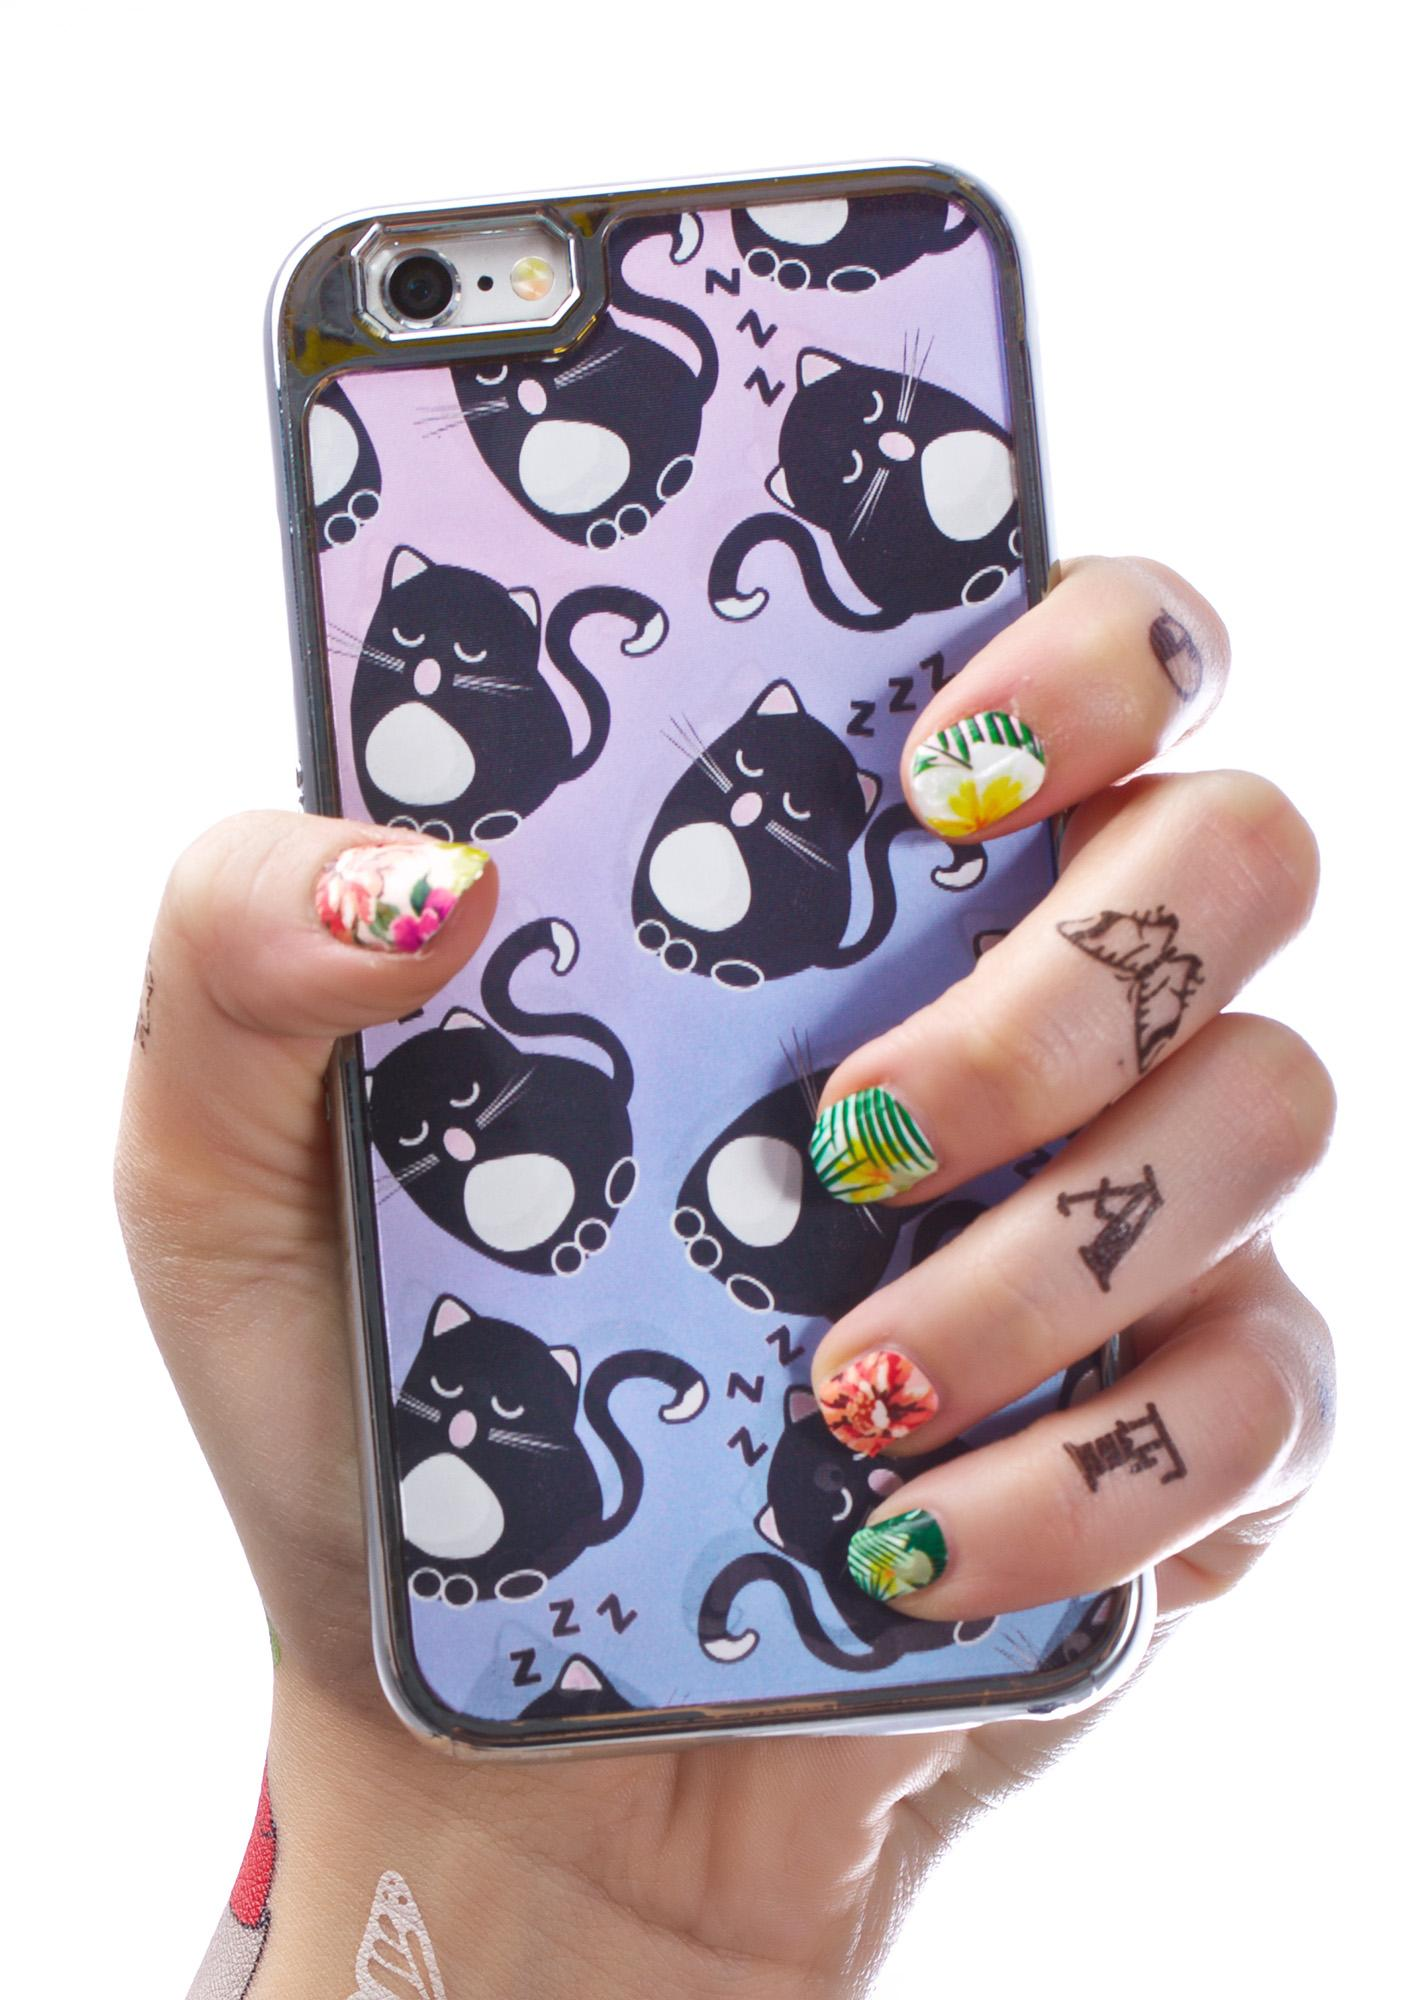 Skinnydip Cat iPhone 6/6+ Case